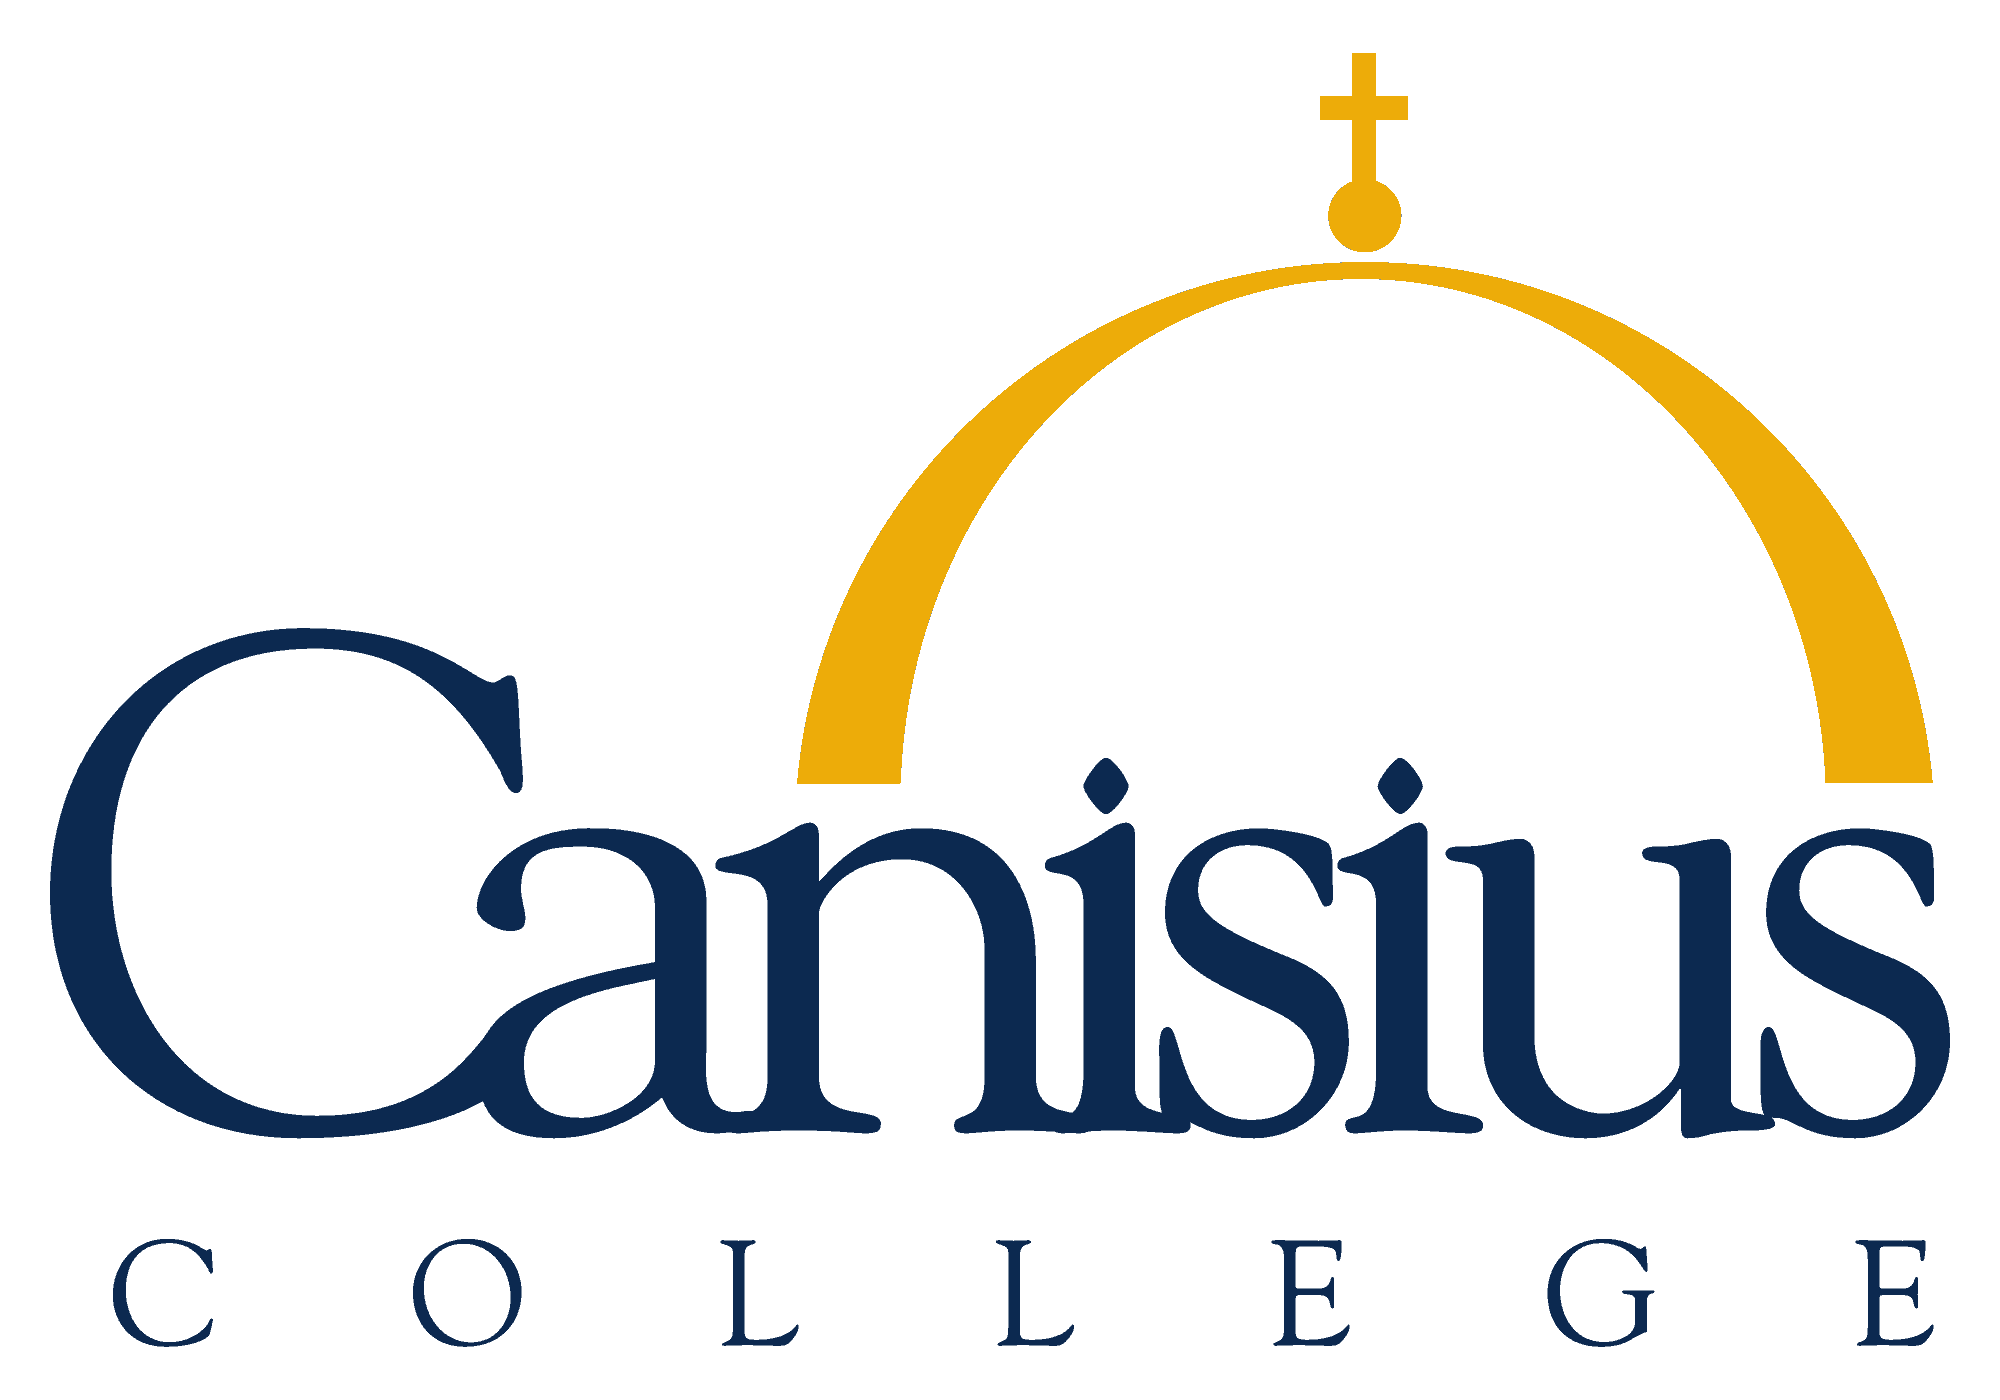 on line graduate programs canisius college logo 176710